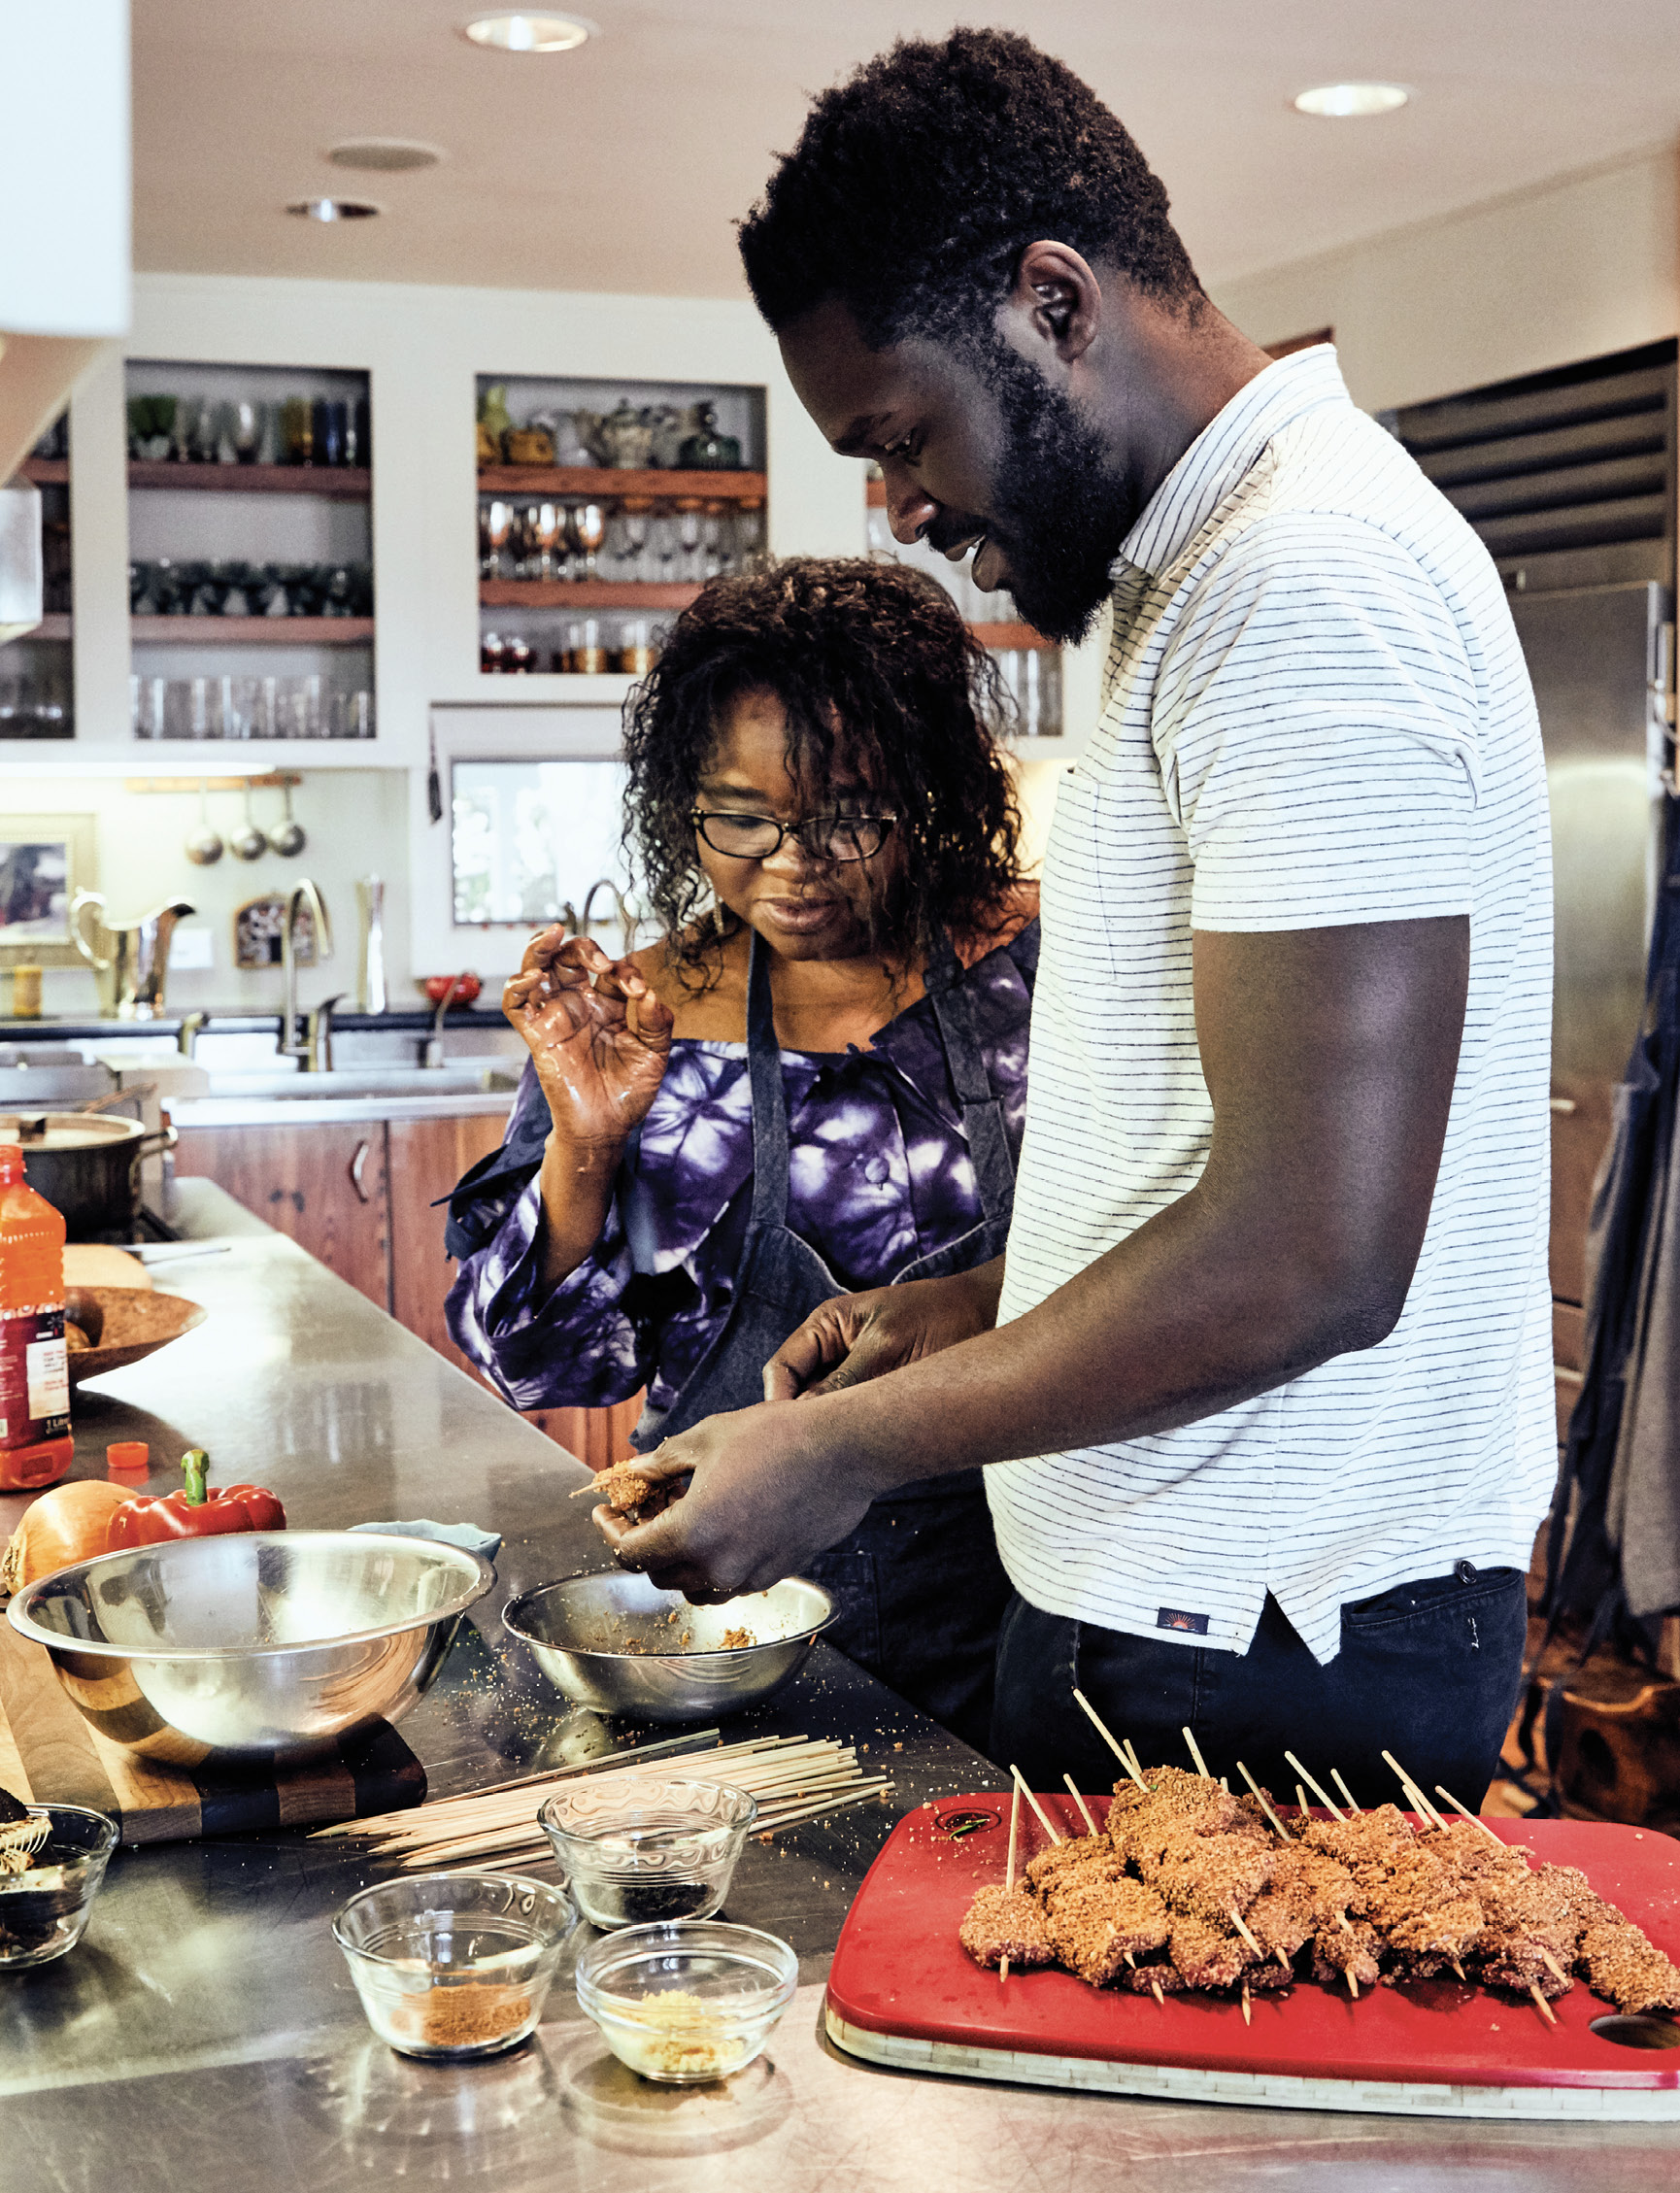 "Though he moved away from Nigeria as a baby, Femi holds an affinity for the Yoruba dishes of his youth. He often seeks his mother's cooking guidance over the phone. ""She always seems to know what I'm about to ask,"" he says."